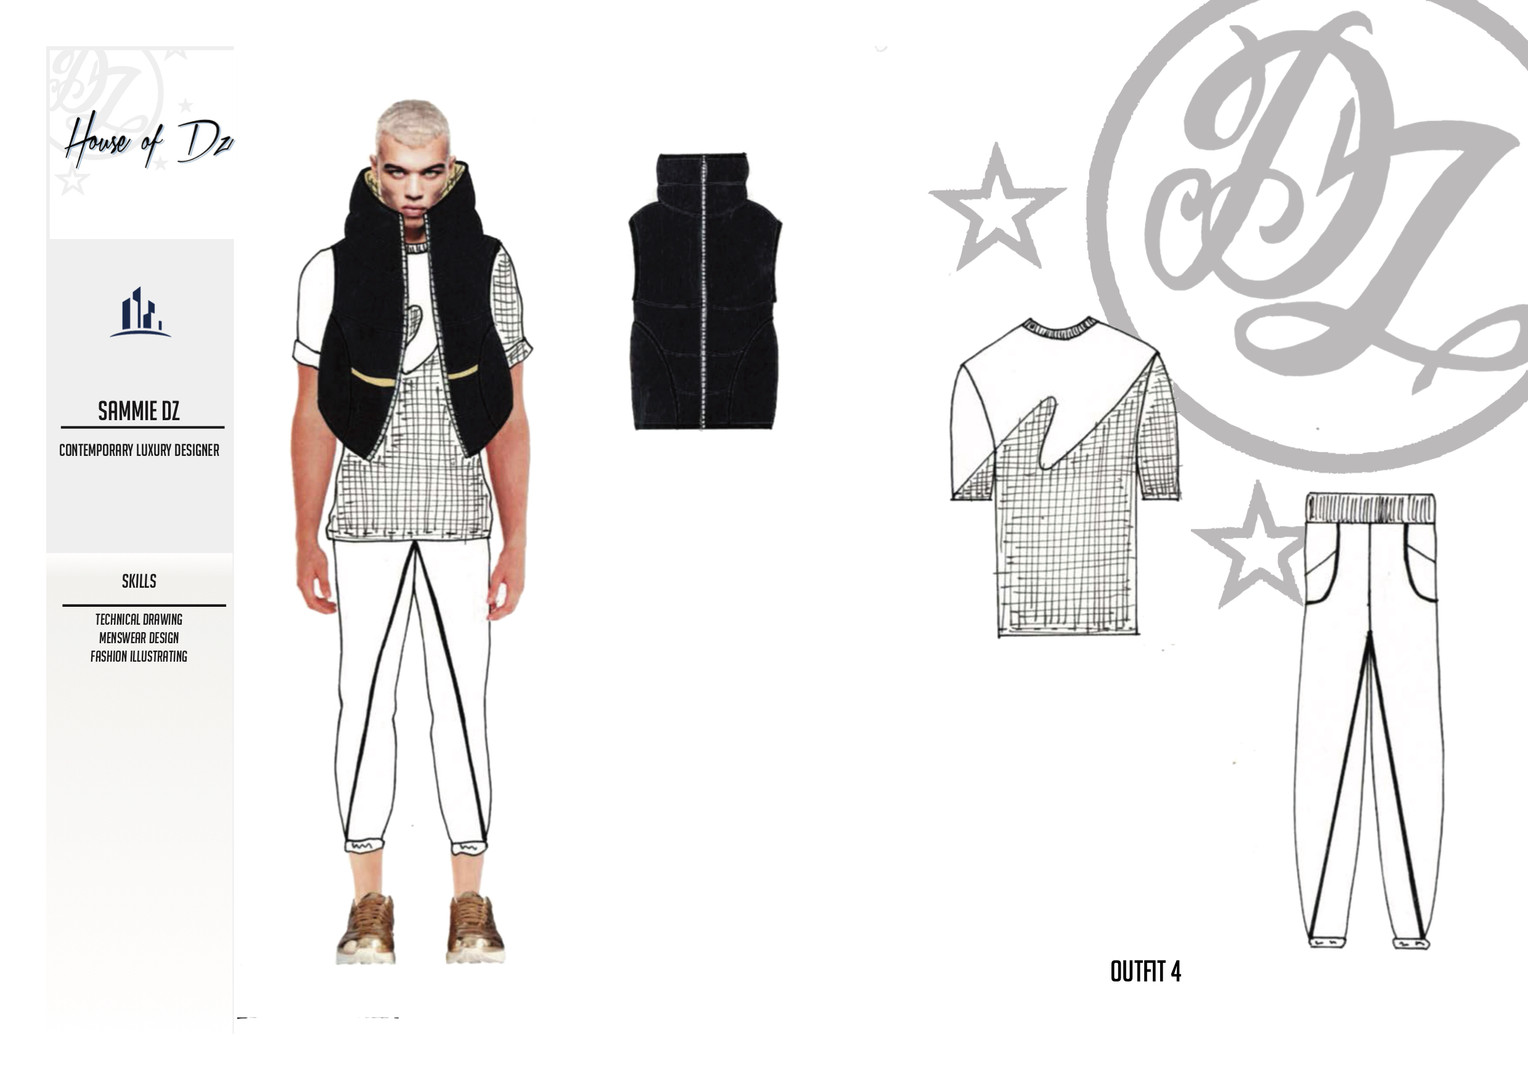 Life in the city - Outfit 4